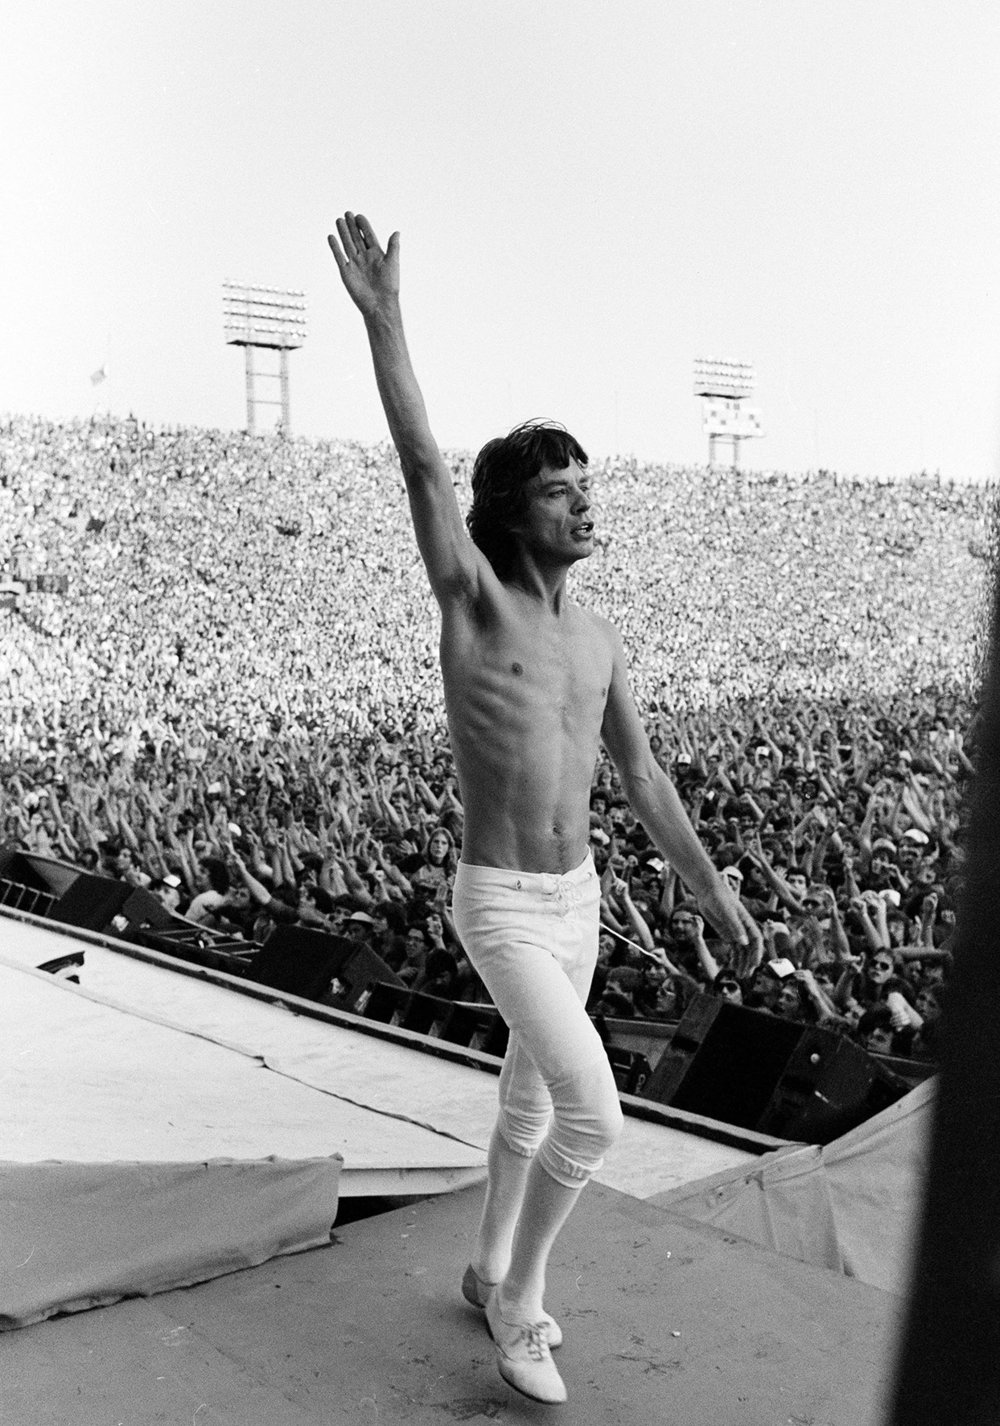 Mick Jagger on Stage, Philadelphia, US Tour, 1981